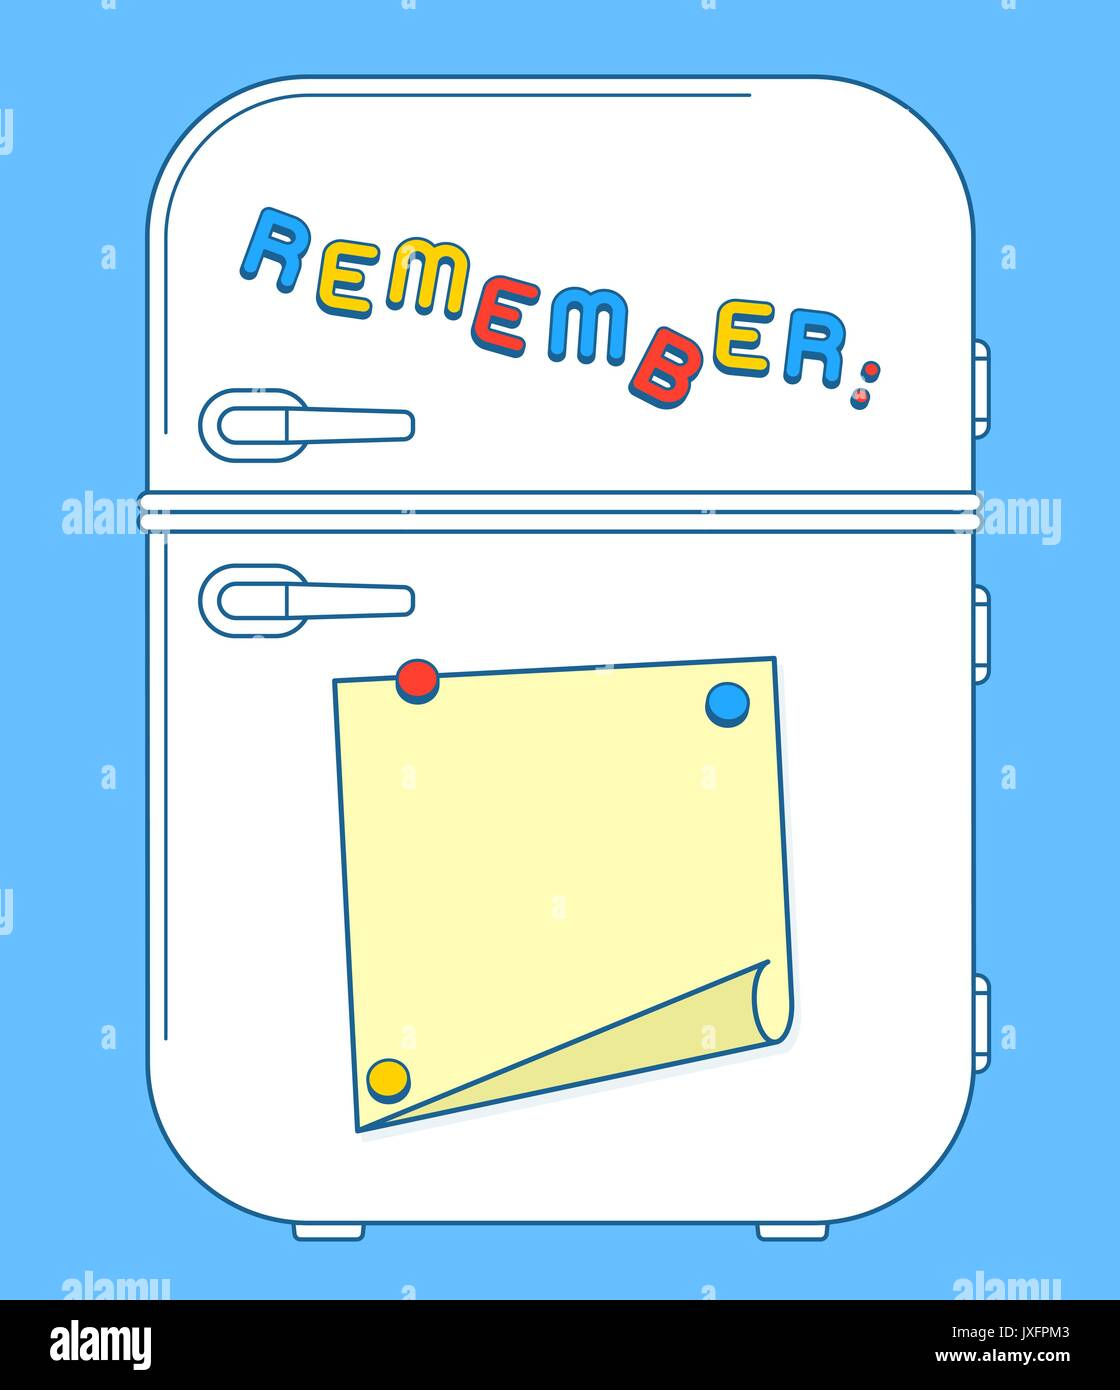 Fridge freezer door with magnets and reminder note with copy space. Vector illustration  sc 1 st  Alamy & Fridge freezer door with magnets and reminder note with copy space ...